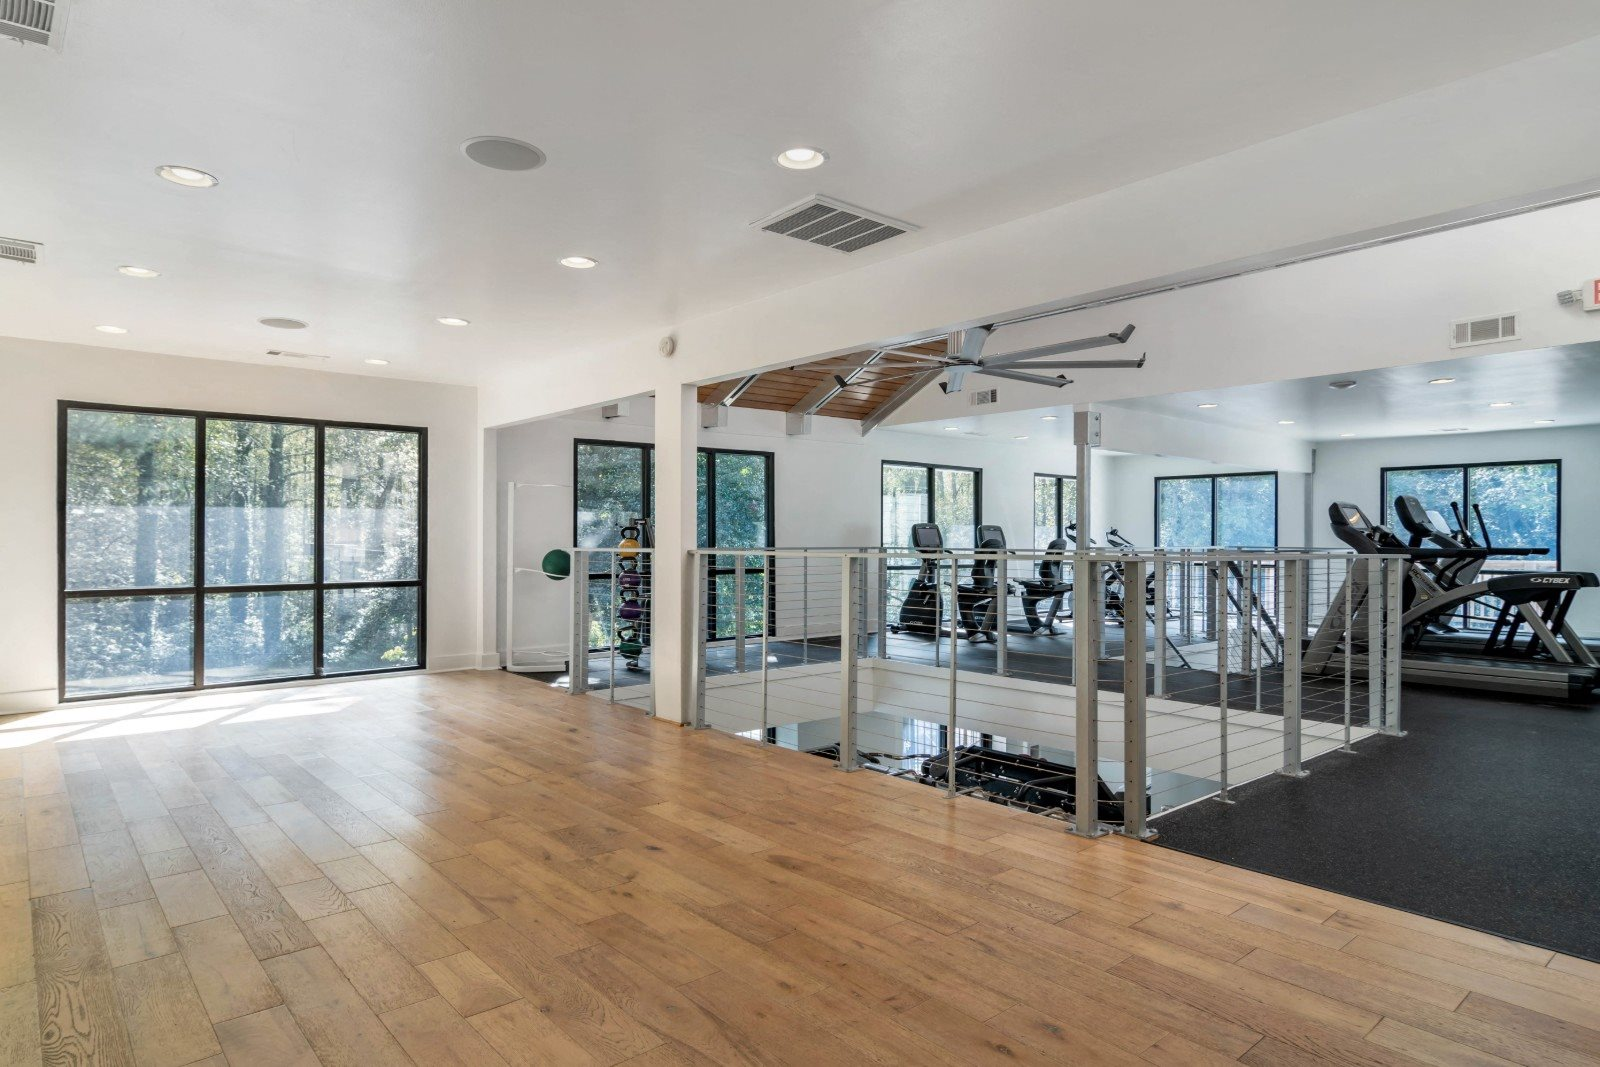 Fitness Center with Yoga Studio